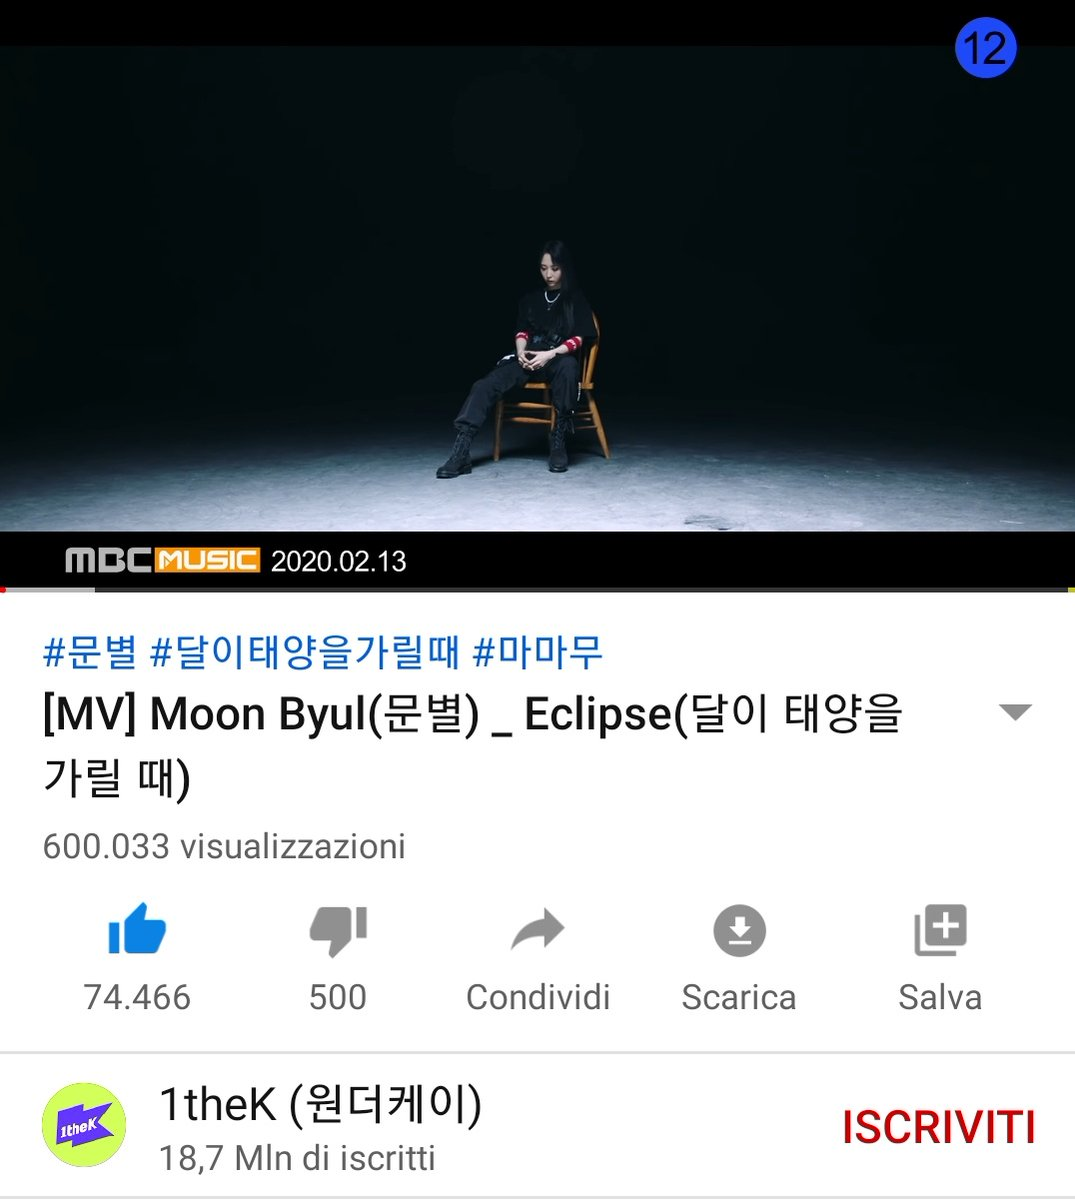 Eclipse on 1theK has reached 600,033 (Views)#MAMAMOO #Moonbyul #EclipseMoonbyul  #Dark_Side_of_the_Moon